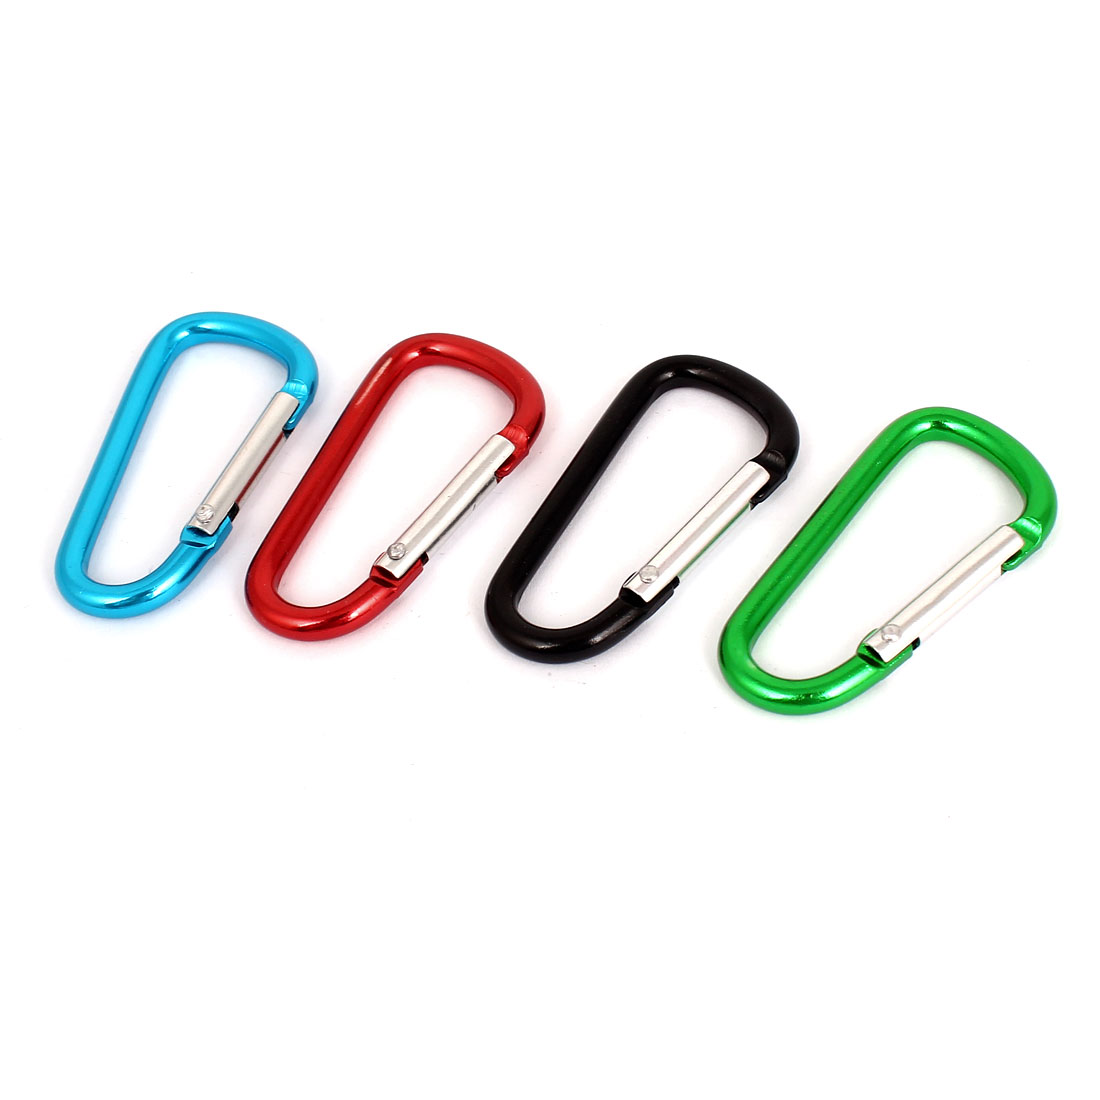 Travelling Camping Hiking Clip Hook D-Ring Keychain Carabiner 4Pcs Multicolor